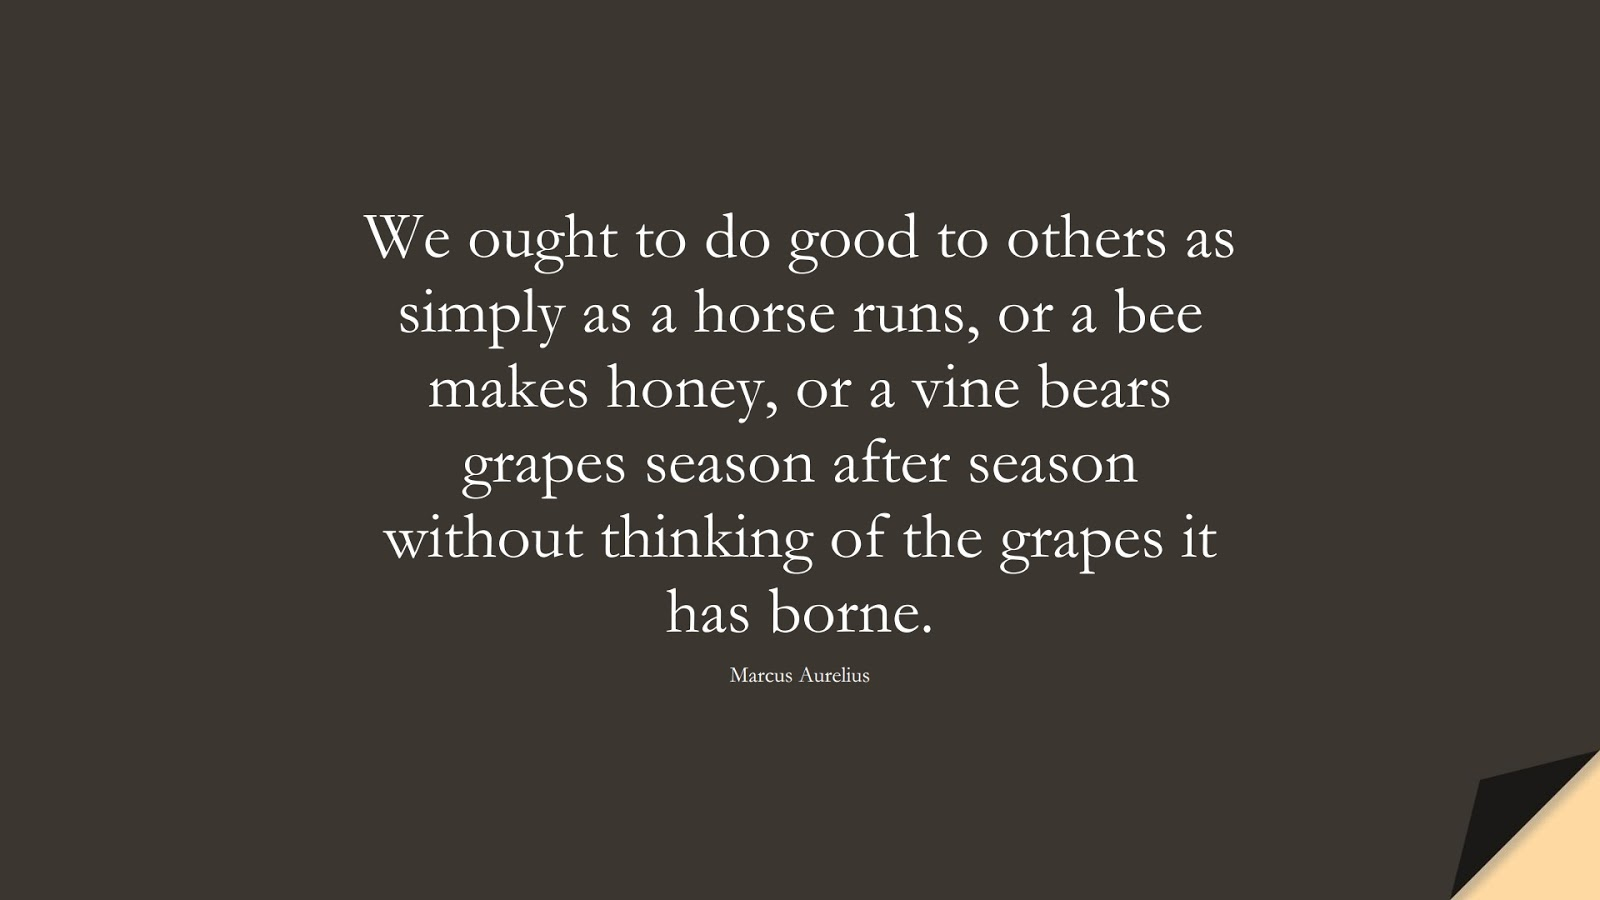 We ought to do good to others as simply as a horse runs, or a bee makes honey, or a vine bears grapes season after season without thinking of the grapes it has borne. (Marcus Aurelius);  #MarcusAureliusQuotes